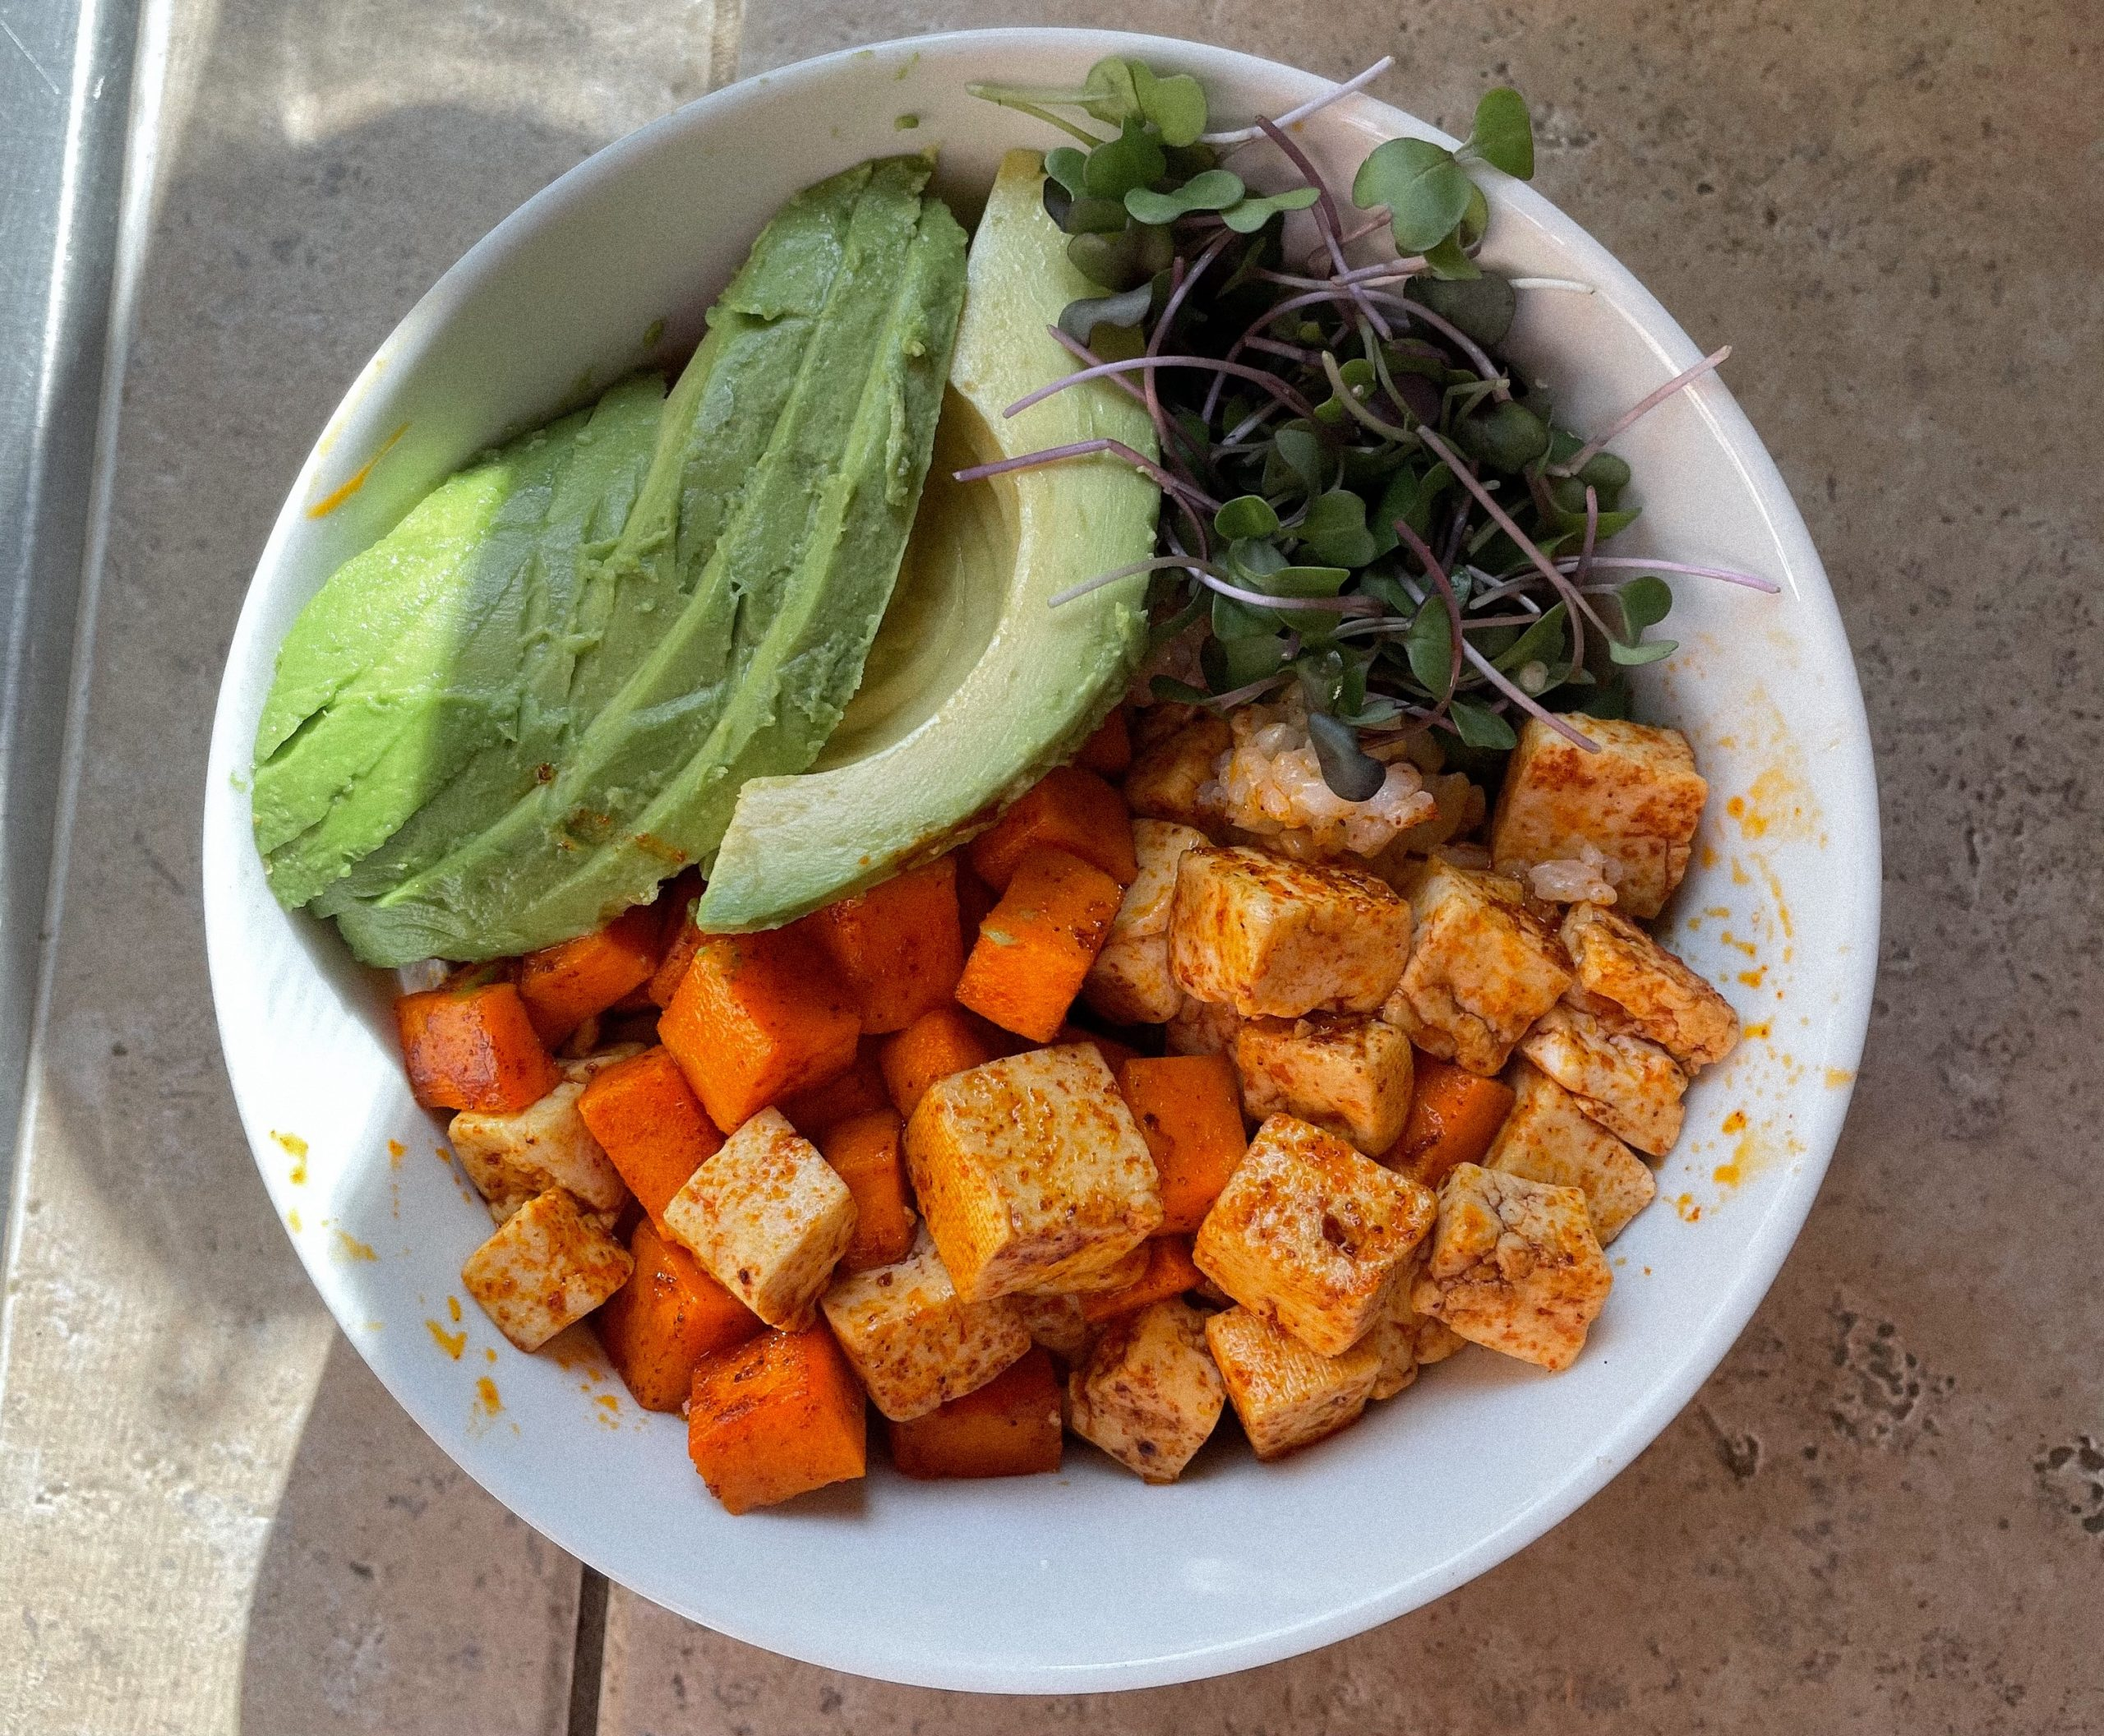 more of my favorite easy meals